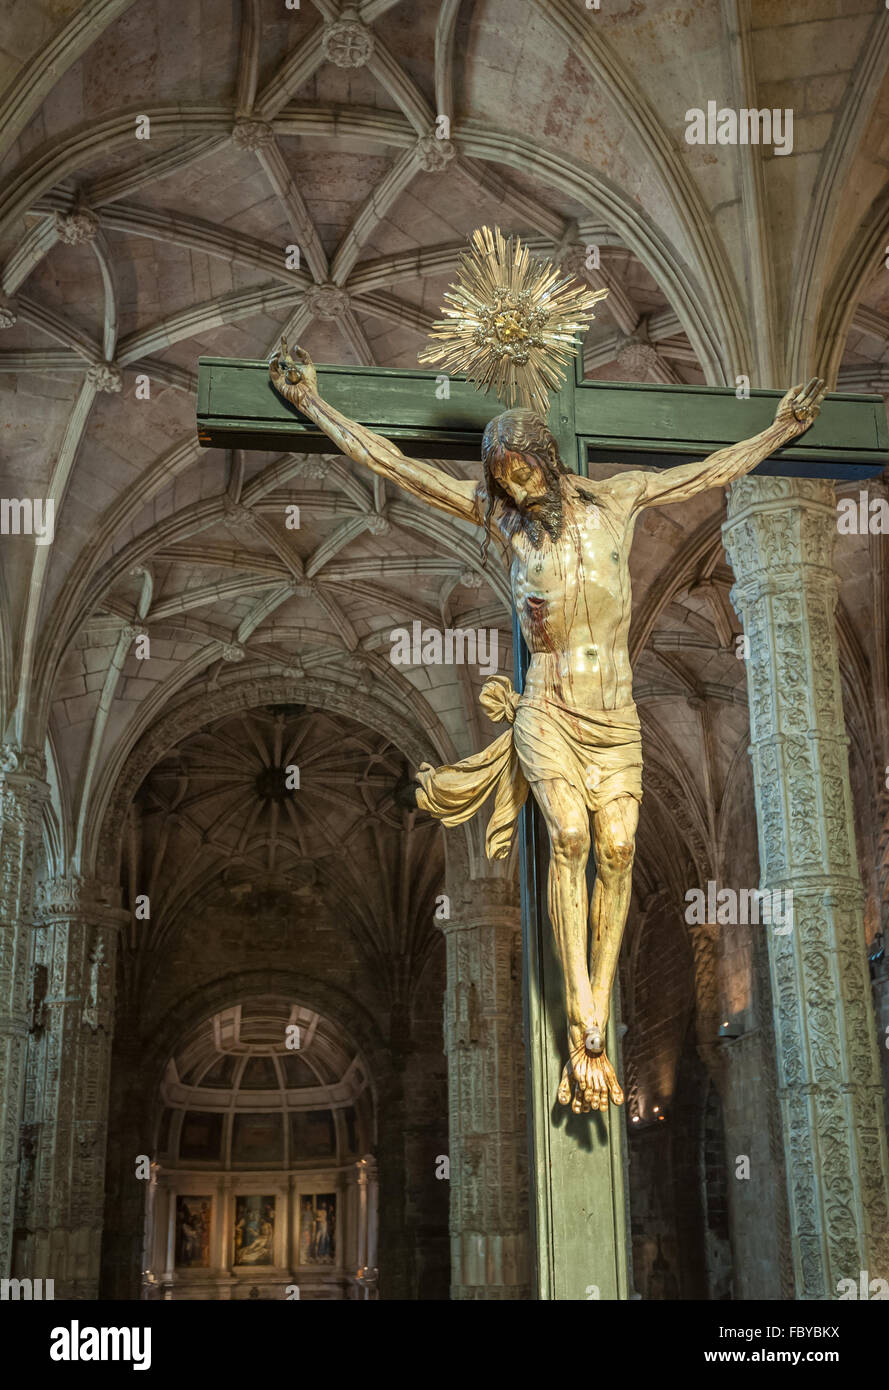 Christ Crucified sculpture in Jeronimos Monastery, Lisbon, Portugal - Stock Image